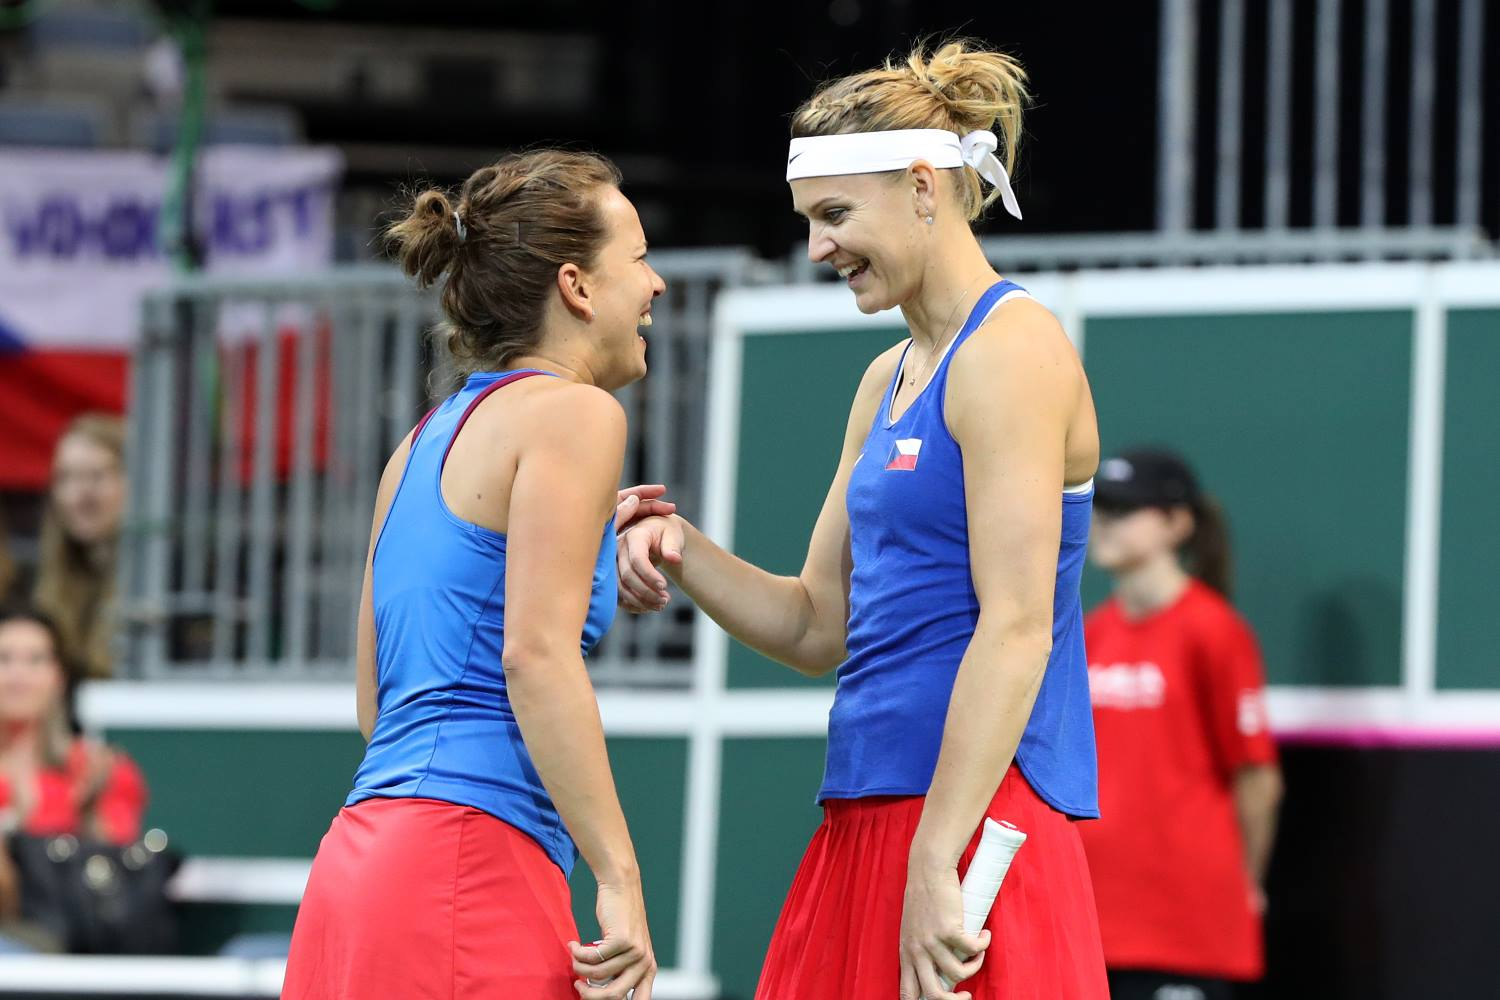 Lucie Safarova will not play Fed Cup